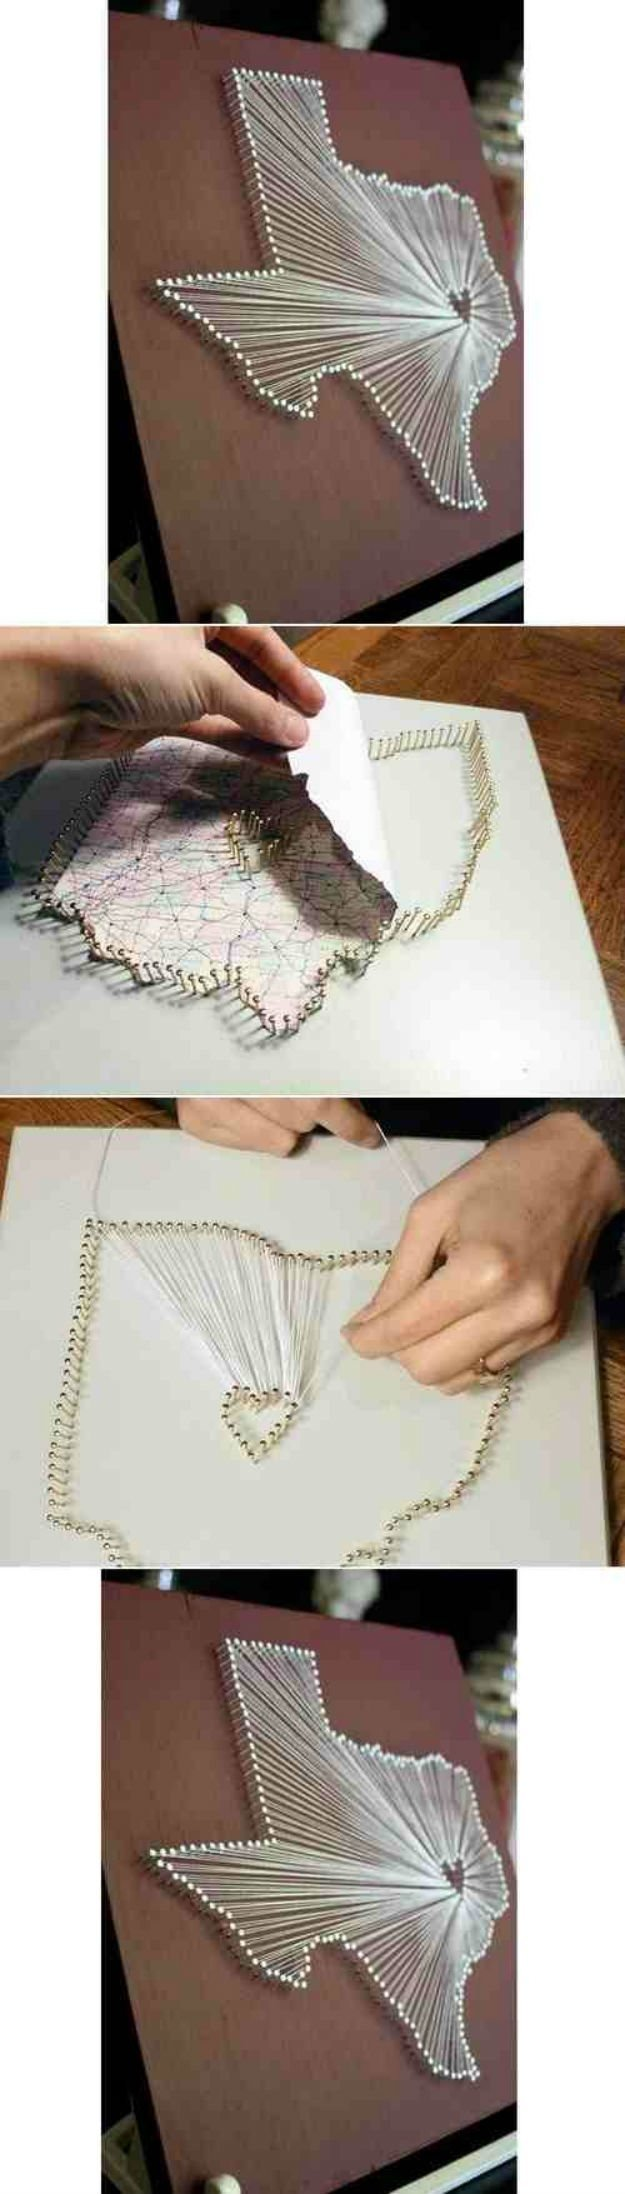 10 Most Popular Christmas Gift Idea For Girlfriend christmas gifts for girlfriends diy projects craft ideas how tos 2021